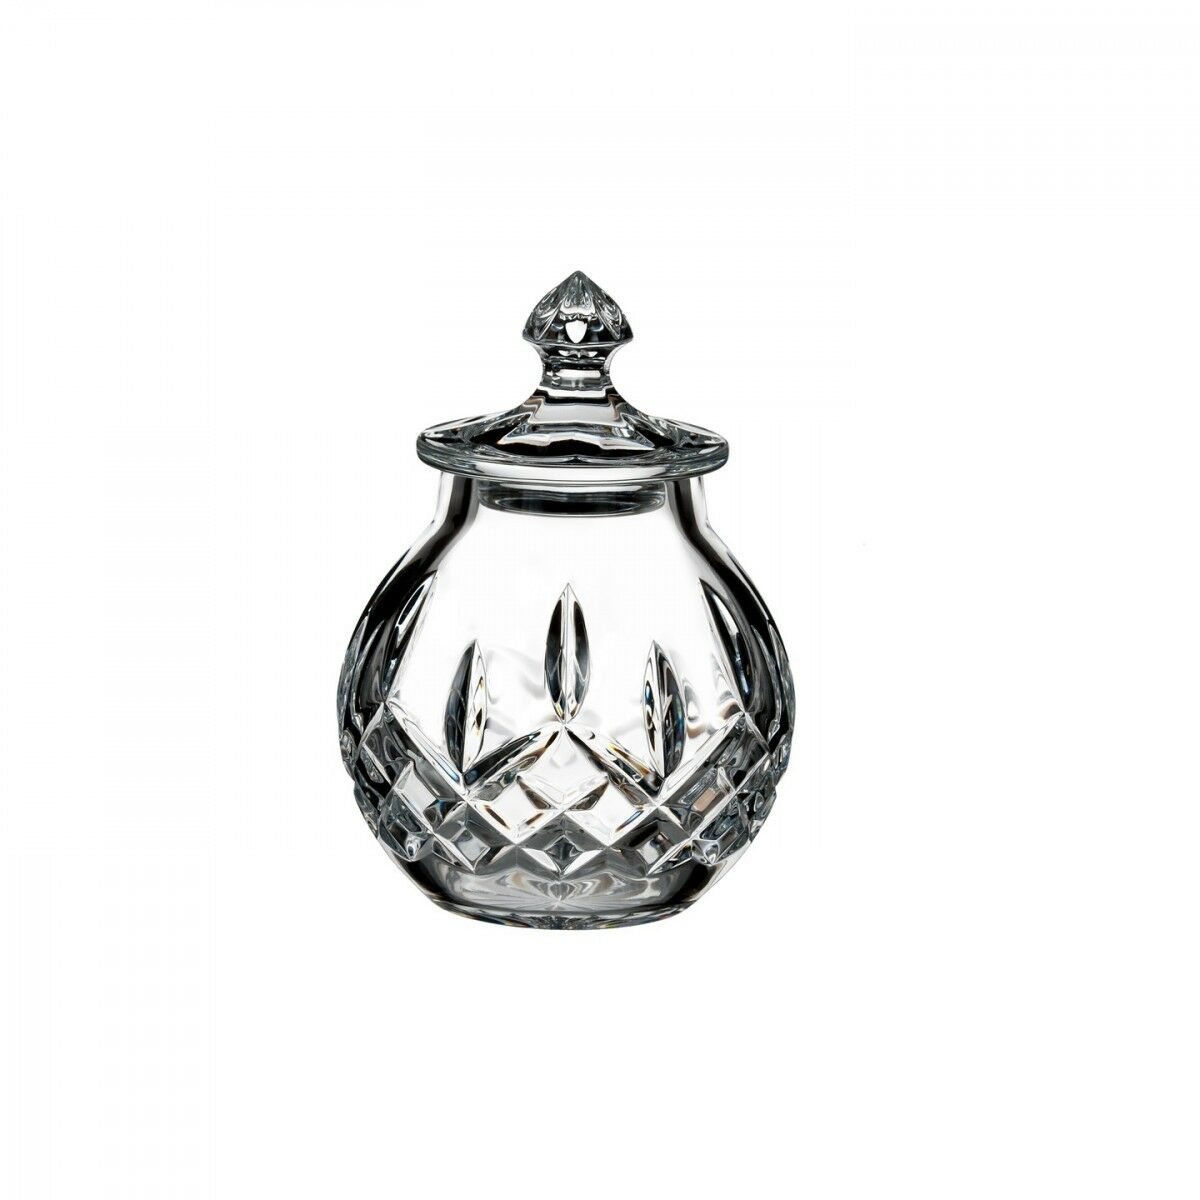 Waterford Lismore Small Coverot Jar New   40025988 40025988 40025988 Discontinued e912aa